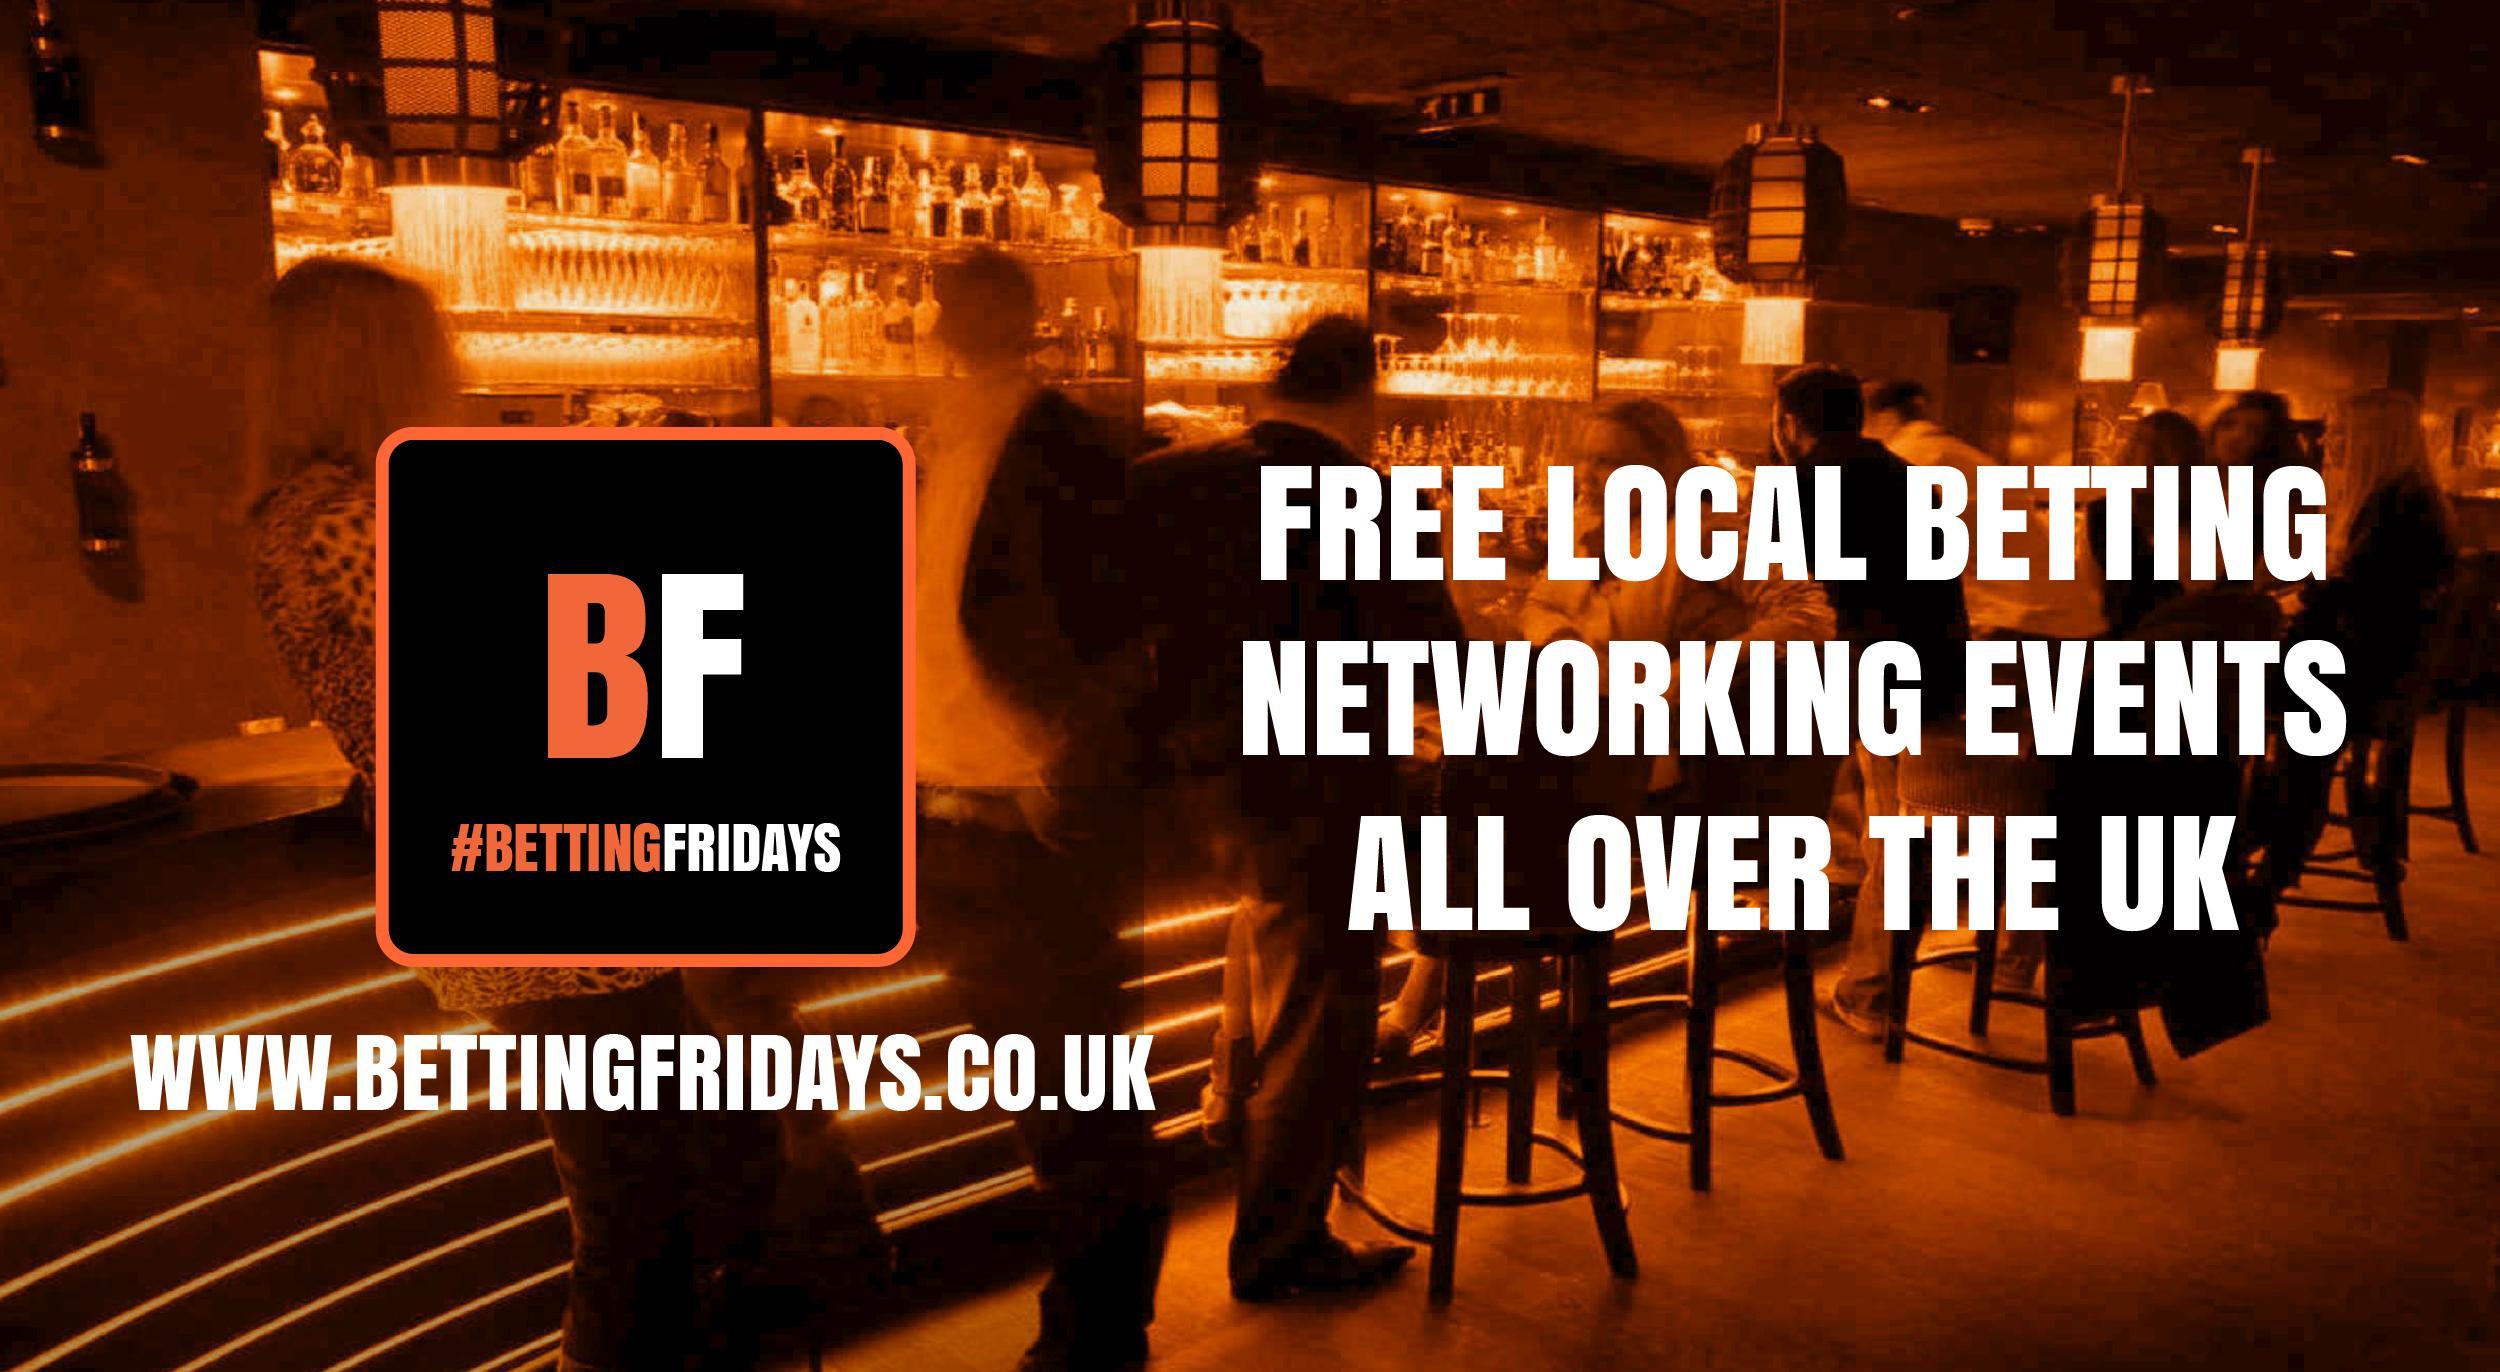 Betting Fridays! Free betting networking event in Wakefield